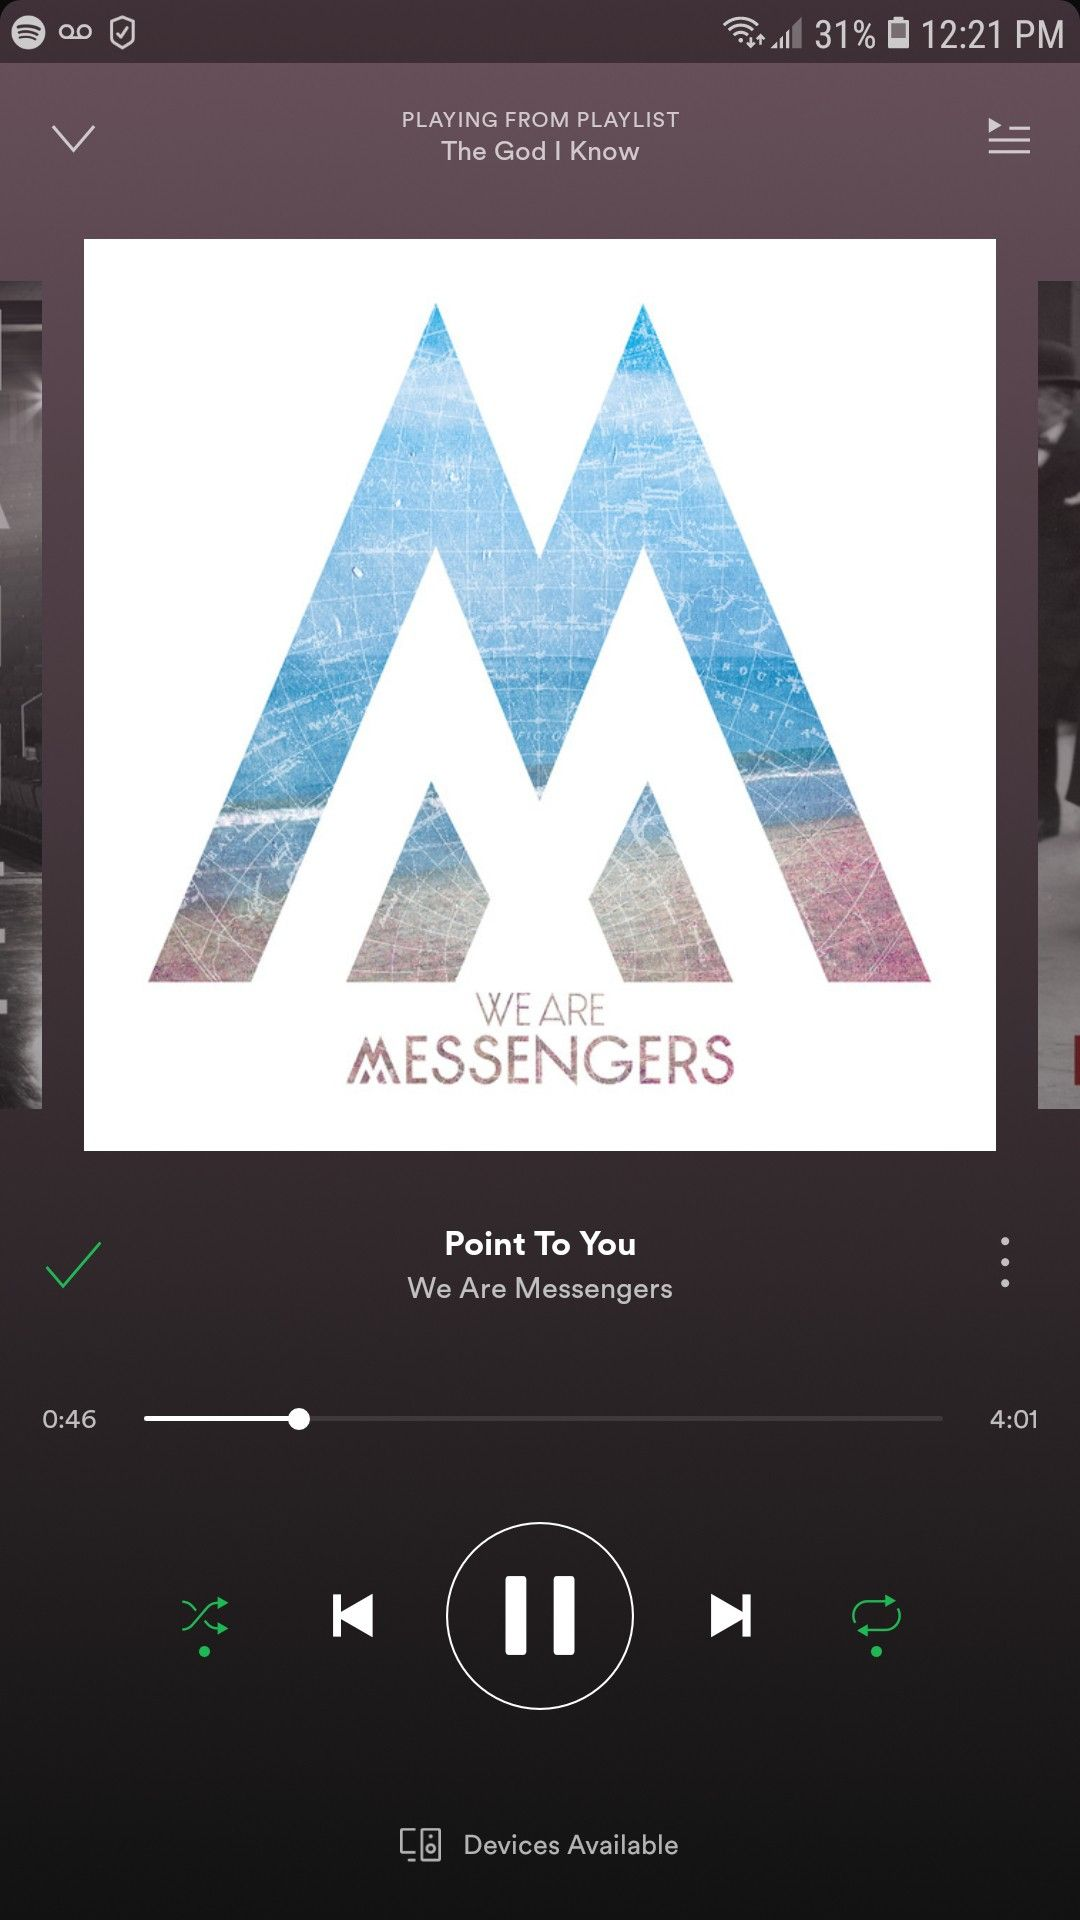 We Are Messangers Point To You Playing From Sareuh S Playlist